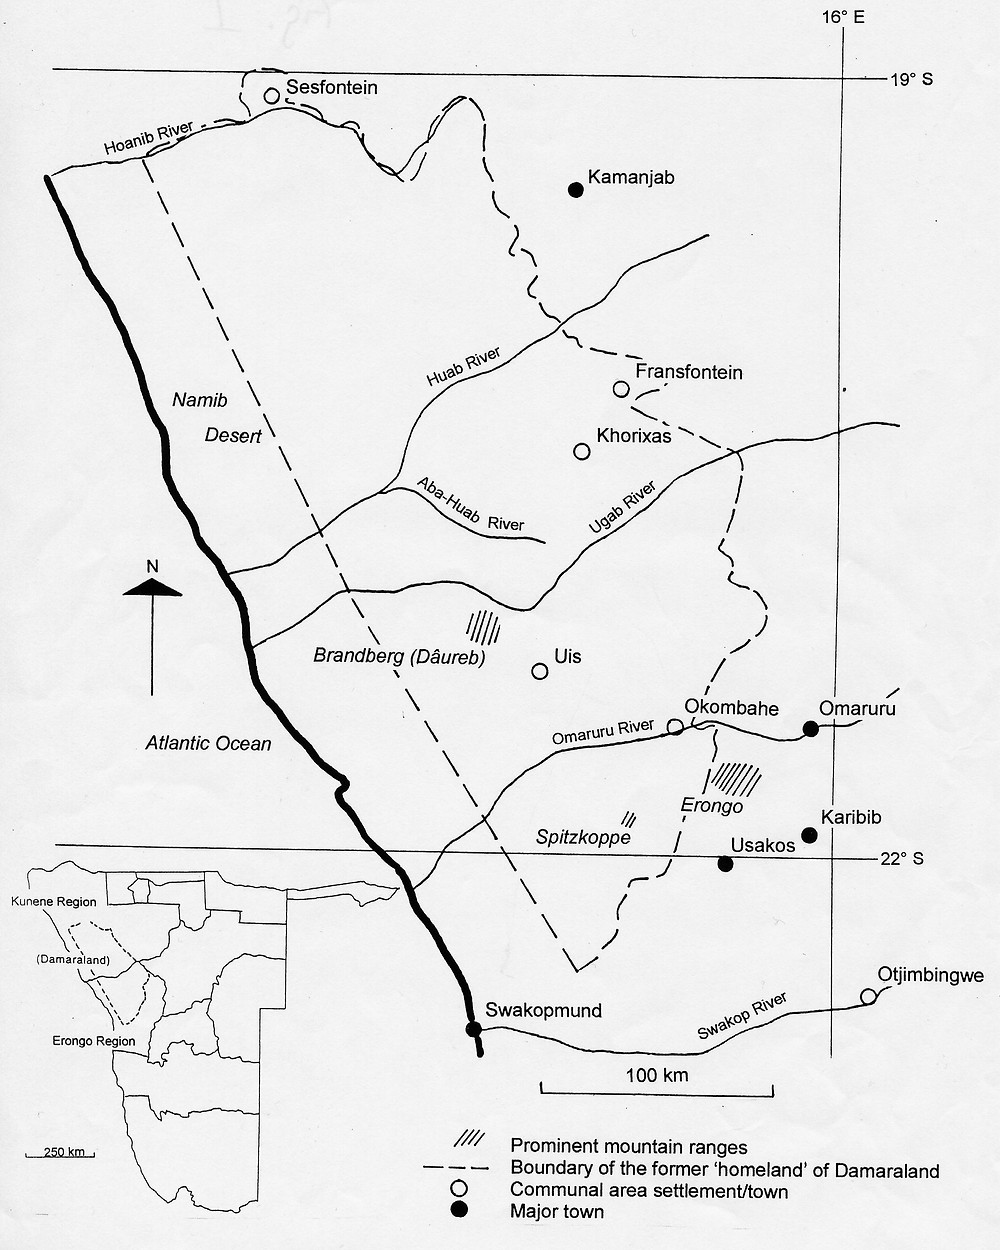 Map showing the boundary of the former 'homeland' of 'Damaraland' establised in 1970 following the recommendations of the Odendaal Commission in 1964.